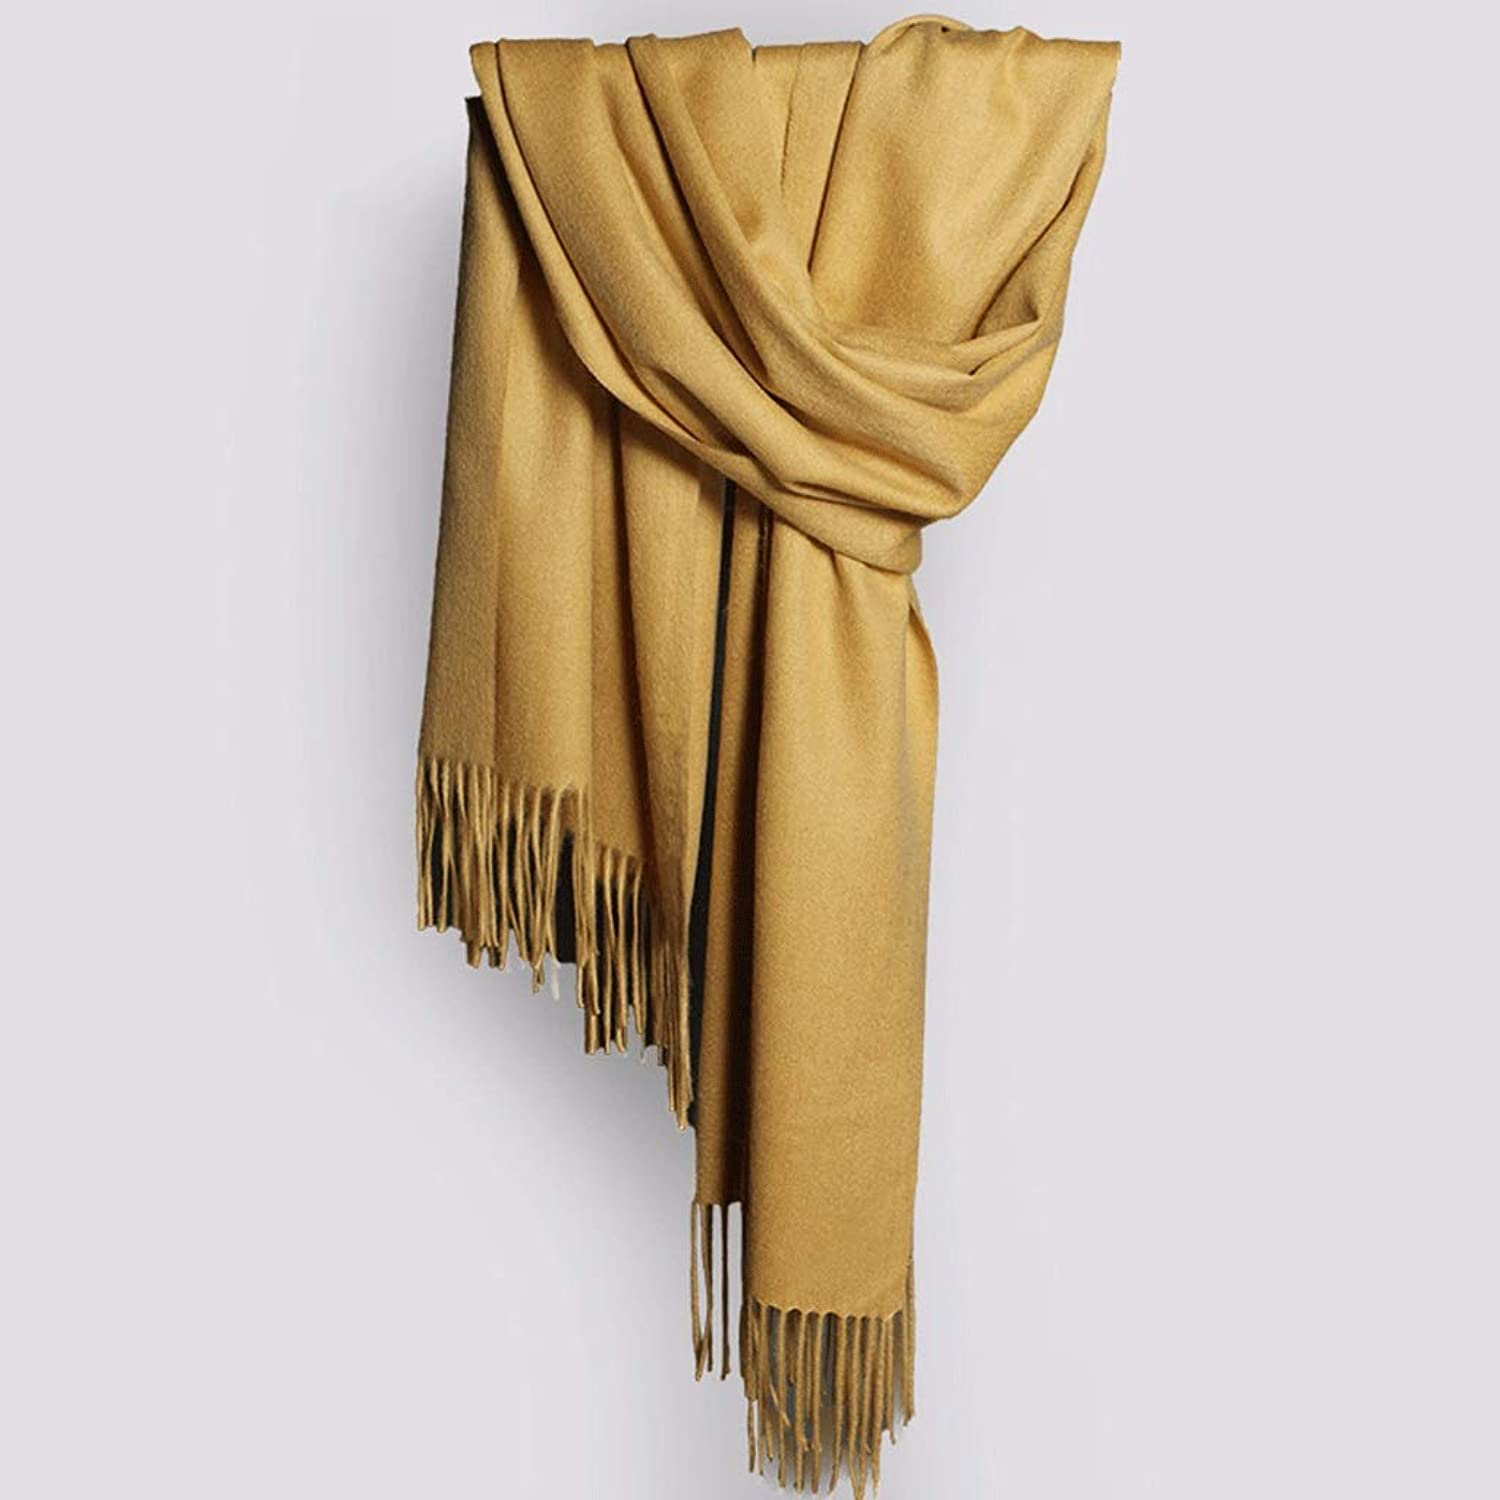 CHX Scarf 100% Natural Fiber Solid color Thick Winter Simple Keep Warm 210×70cm Multicolor Optional V (color   Yellow)